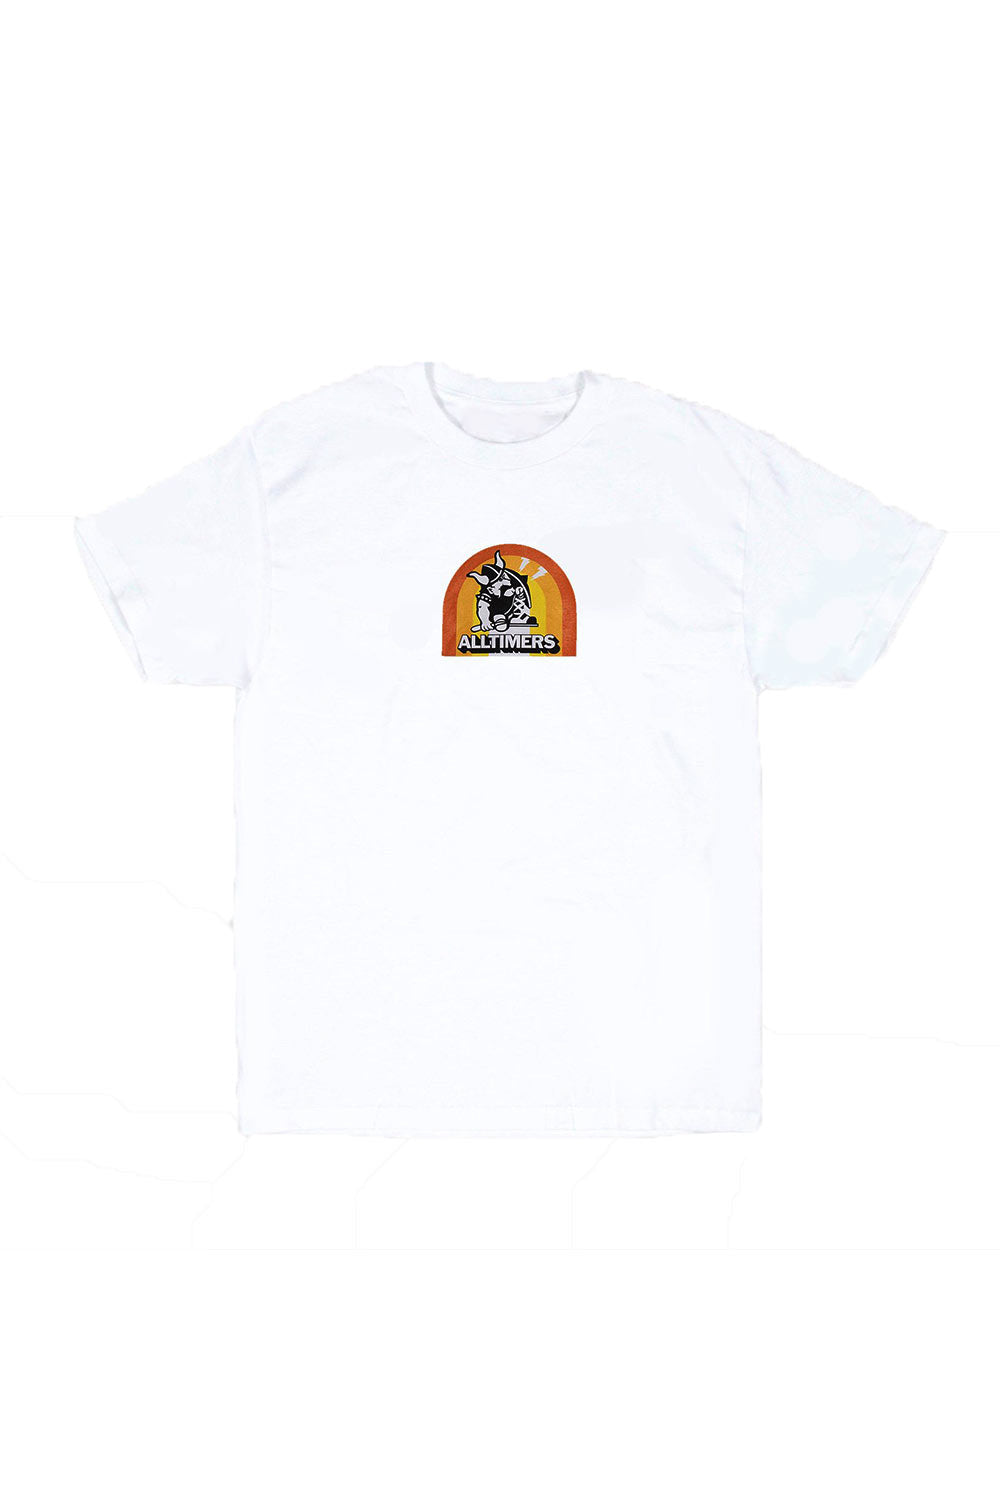 Alltimers T Flex Tee - White